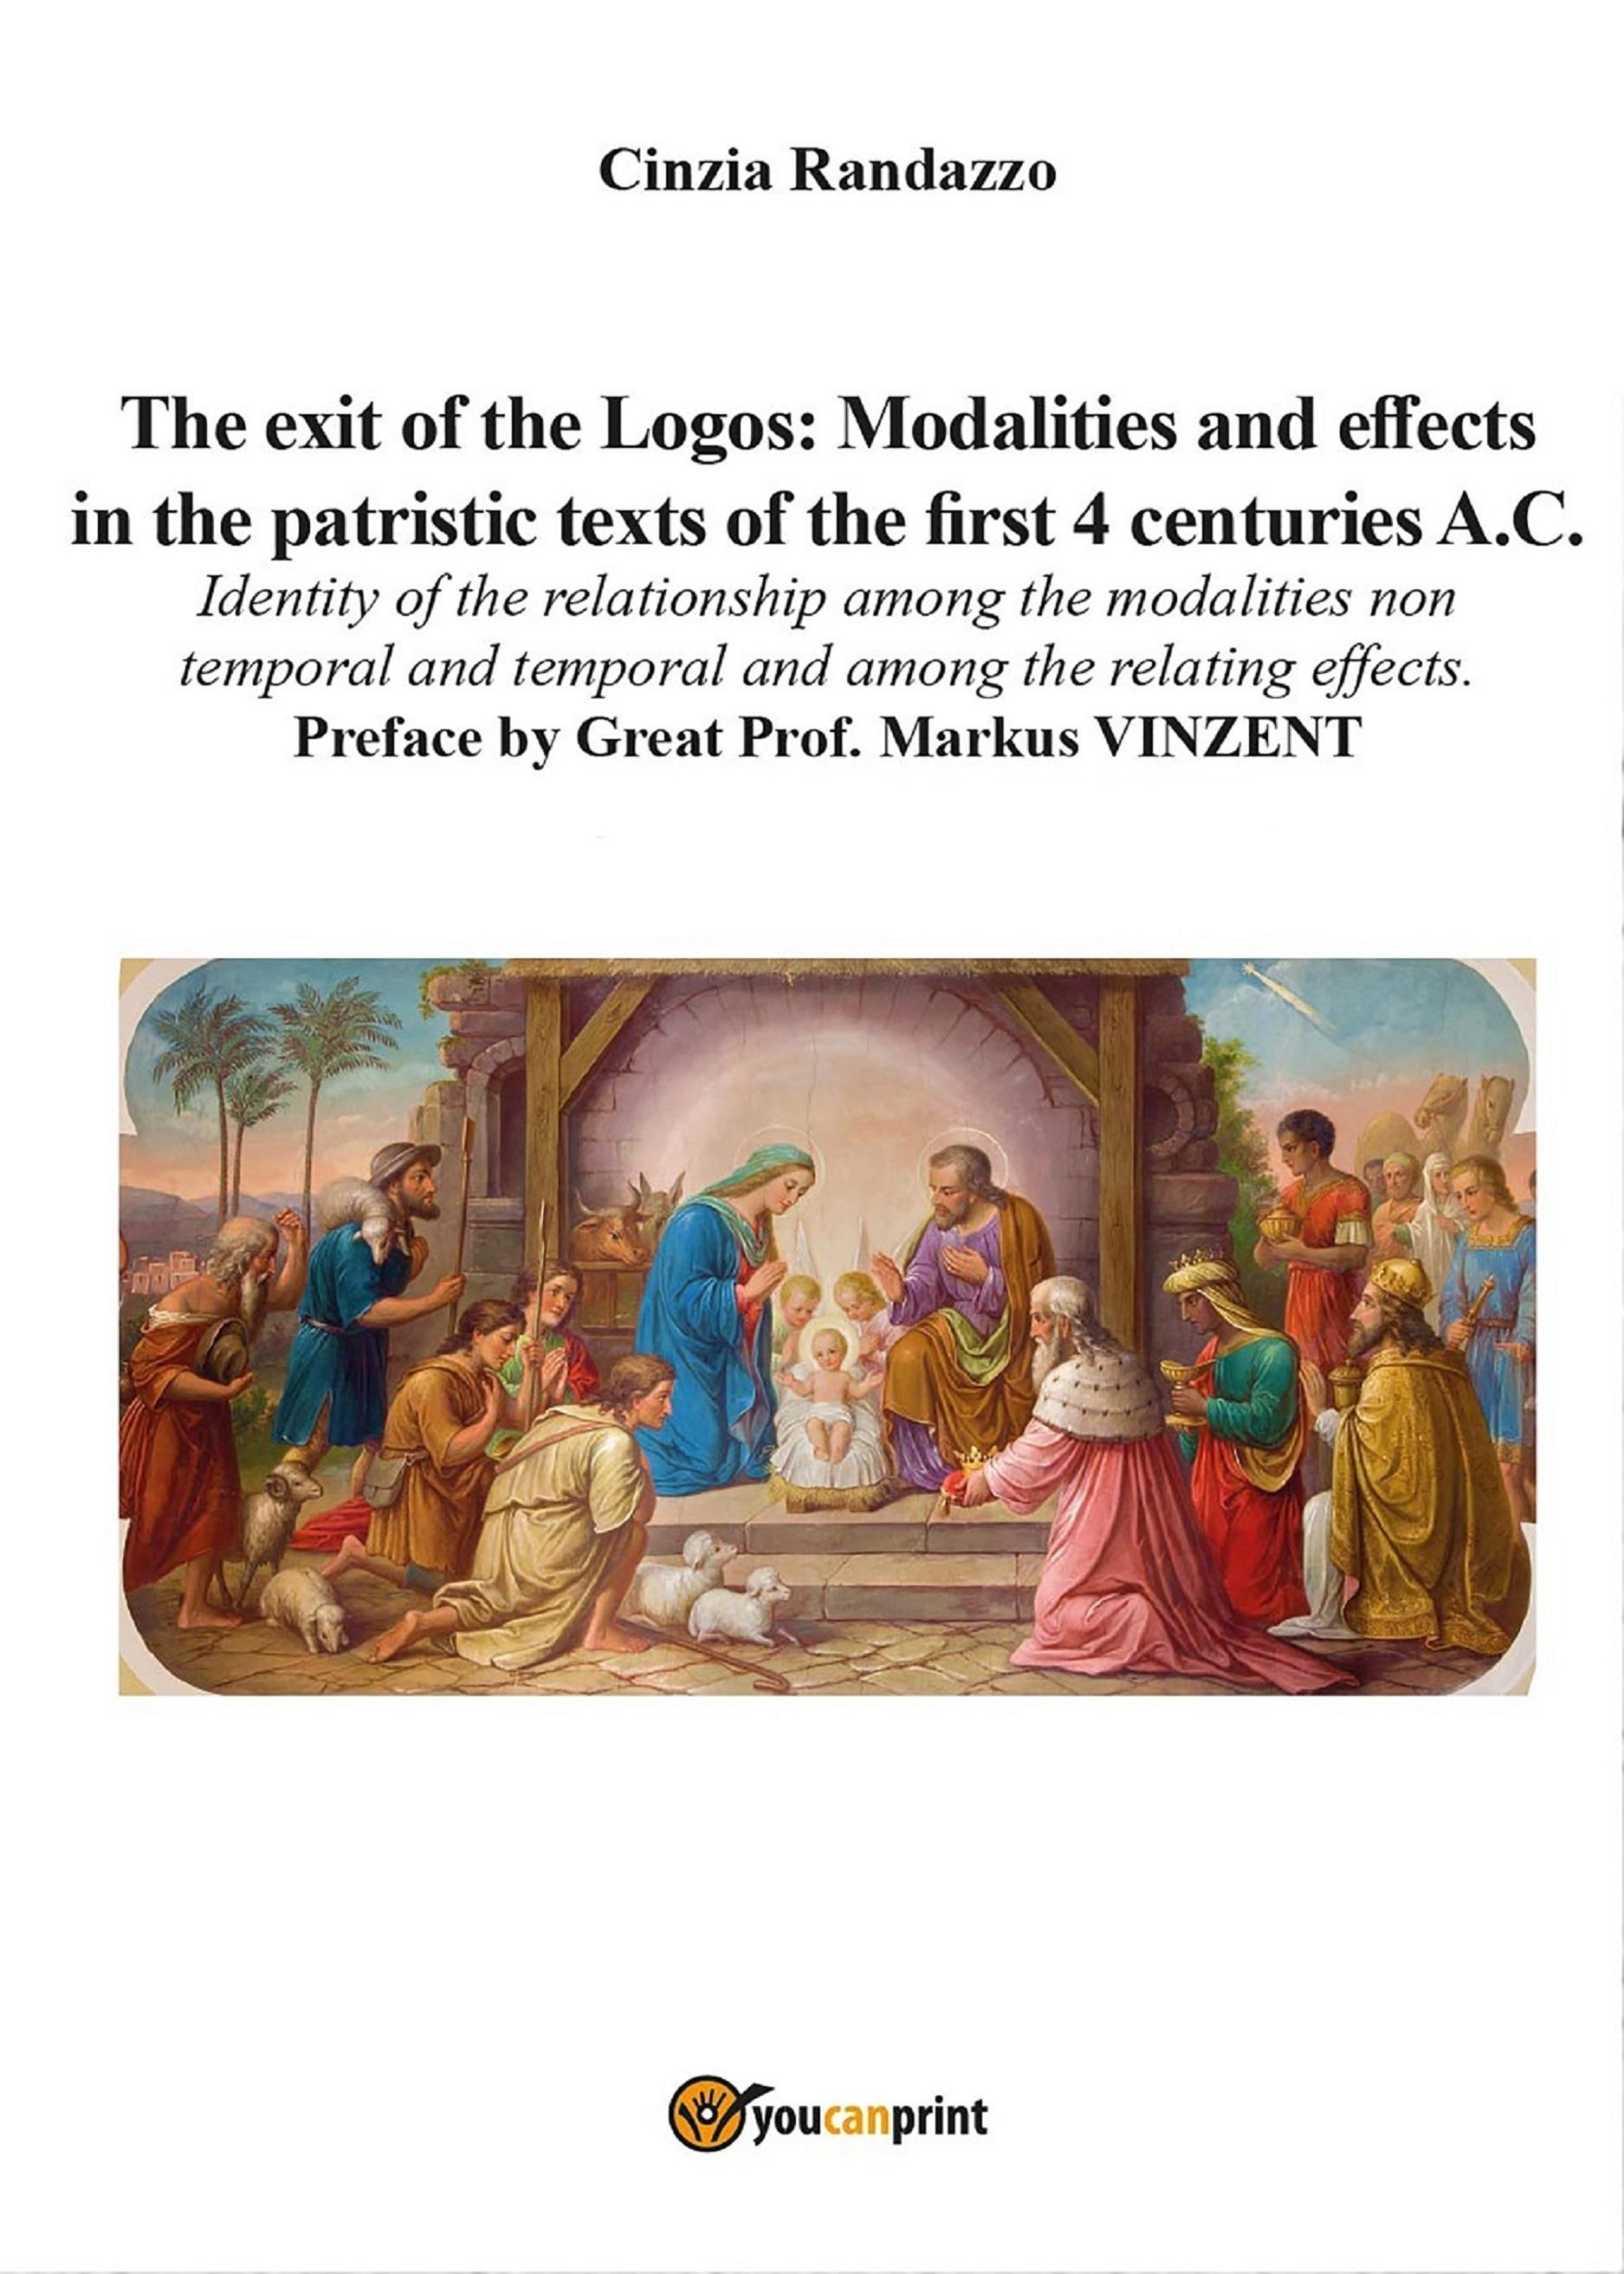 The exit of the Logos: modalities and effects in the patristic texts of the first 4 centuries A.C......